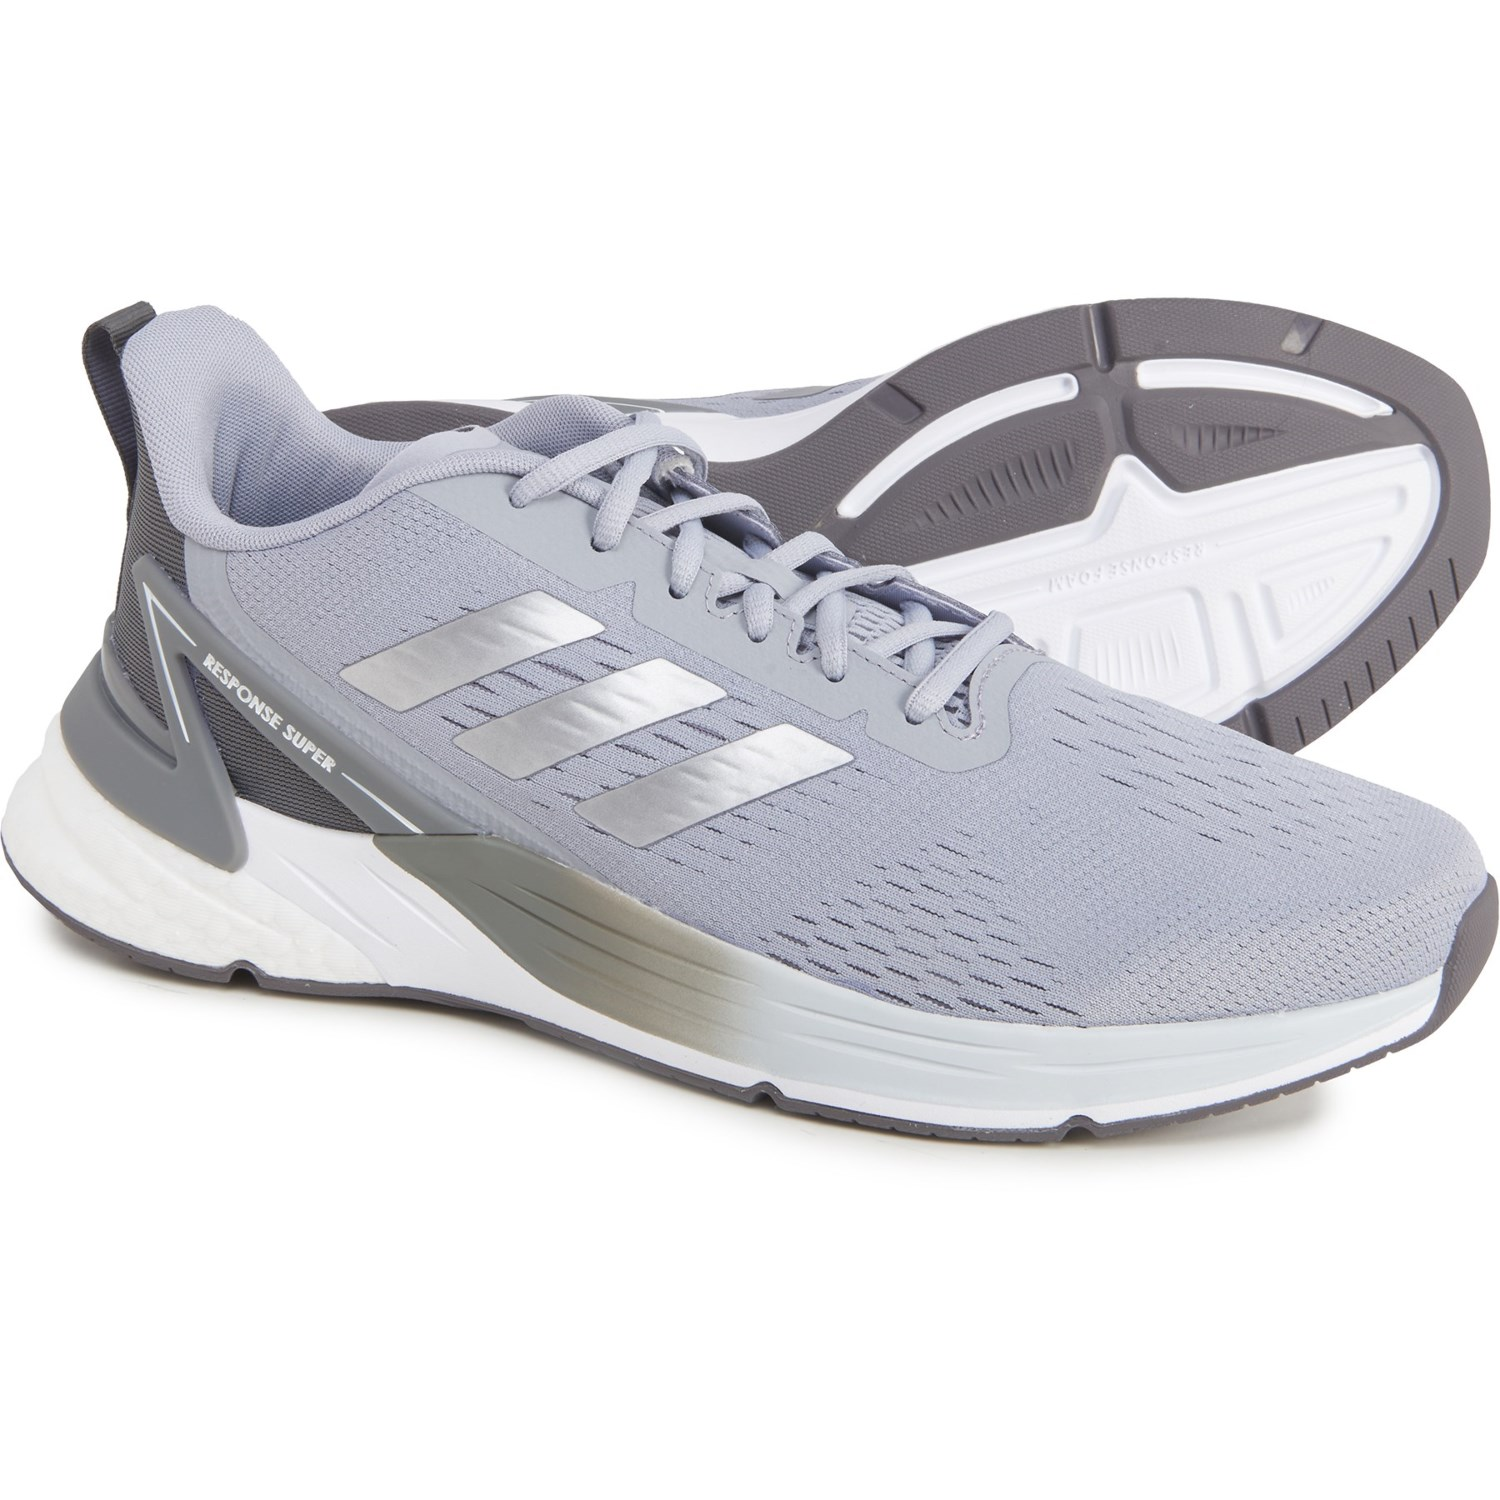 adidas Response Super Running Shoes (For Men) - Save 33%